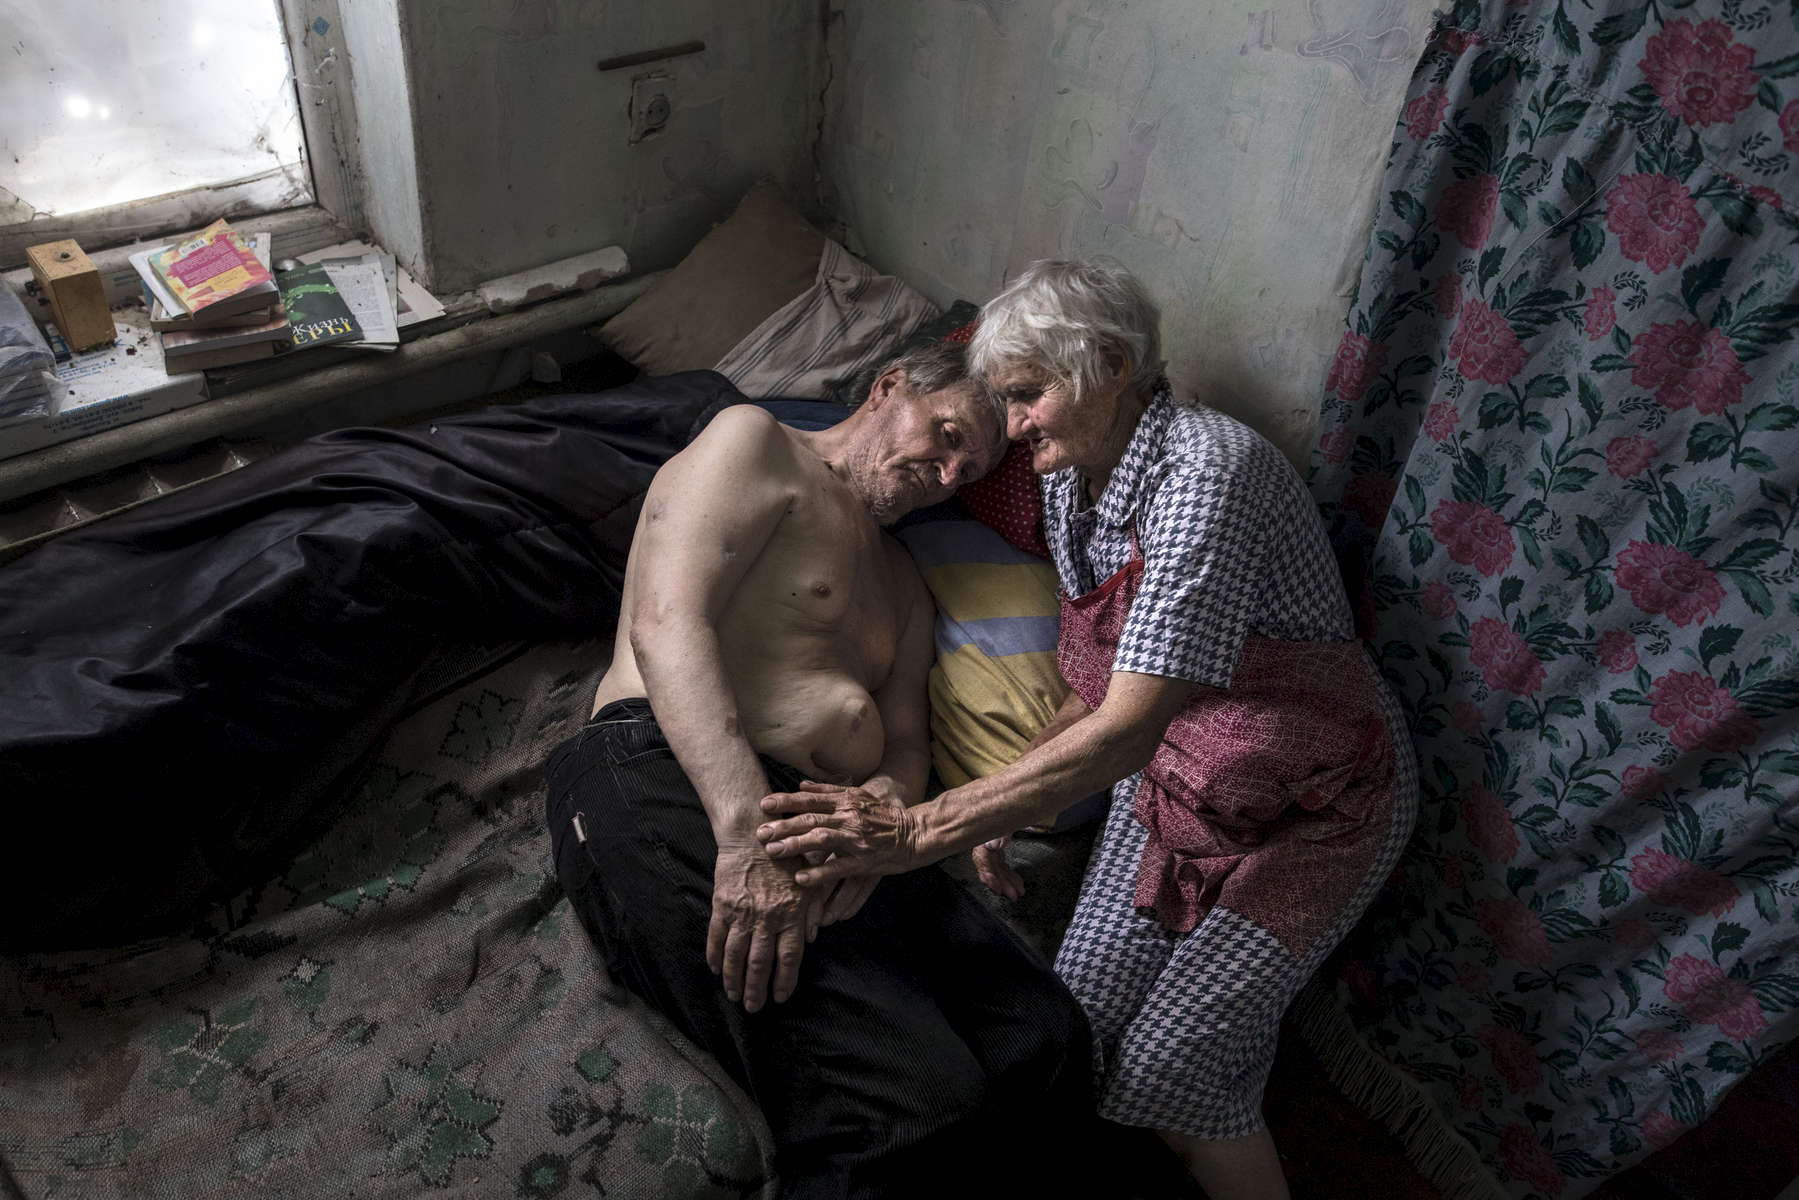 Opytne: Donetsk region: Raisa Petrovna, 80 and her husband Stanislav Vasilyevich live in a village often caught in the crossfire between Ukrainian and Pro-Russian separatists, too close to the contact line. Raisa says that tanks were driving in front of their home in the first year of the war, now they have learned to live with the sound of shelling and gunfire daily.  {quote}We were sitting last home, screaming at them not to kill us!{quote} Riasa said. {quote} Her husband was injured twice by shrapnel, once in his abdomen, requiring surgery. He suffers from a hernia that keeps on growing. Stanislav suffers from dementia now along with his other medical issues. {quote} I have to treat him as a child, I am so sorry that he is like this now, I am afraid to leave him even for a moment.;{quote} Raisa stated. Their two sons live on the other side of the contact line unable to visit often because of the war. Their village, Opytne depends on humanitarian organizations to help the elderly who refuse to leave their homes and are trapped in a dangerous situation.After more than four years of war the armed conflict in eastern Ukraine has a human toll that is staggering. The war has displaced more than 1.6 million with over 2,500 civilians killed and 9,000 injured. Some 200,000 people live under constant fear of shelling every day, with nearly a third of the 3.4 million people in need of humanitarian assistance over 60 years of age. Ukraine has the highest proportion of elderly affected by war in the world.